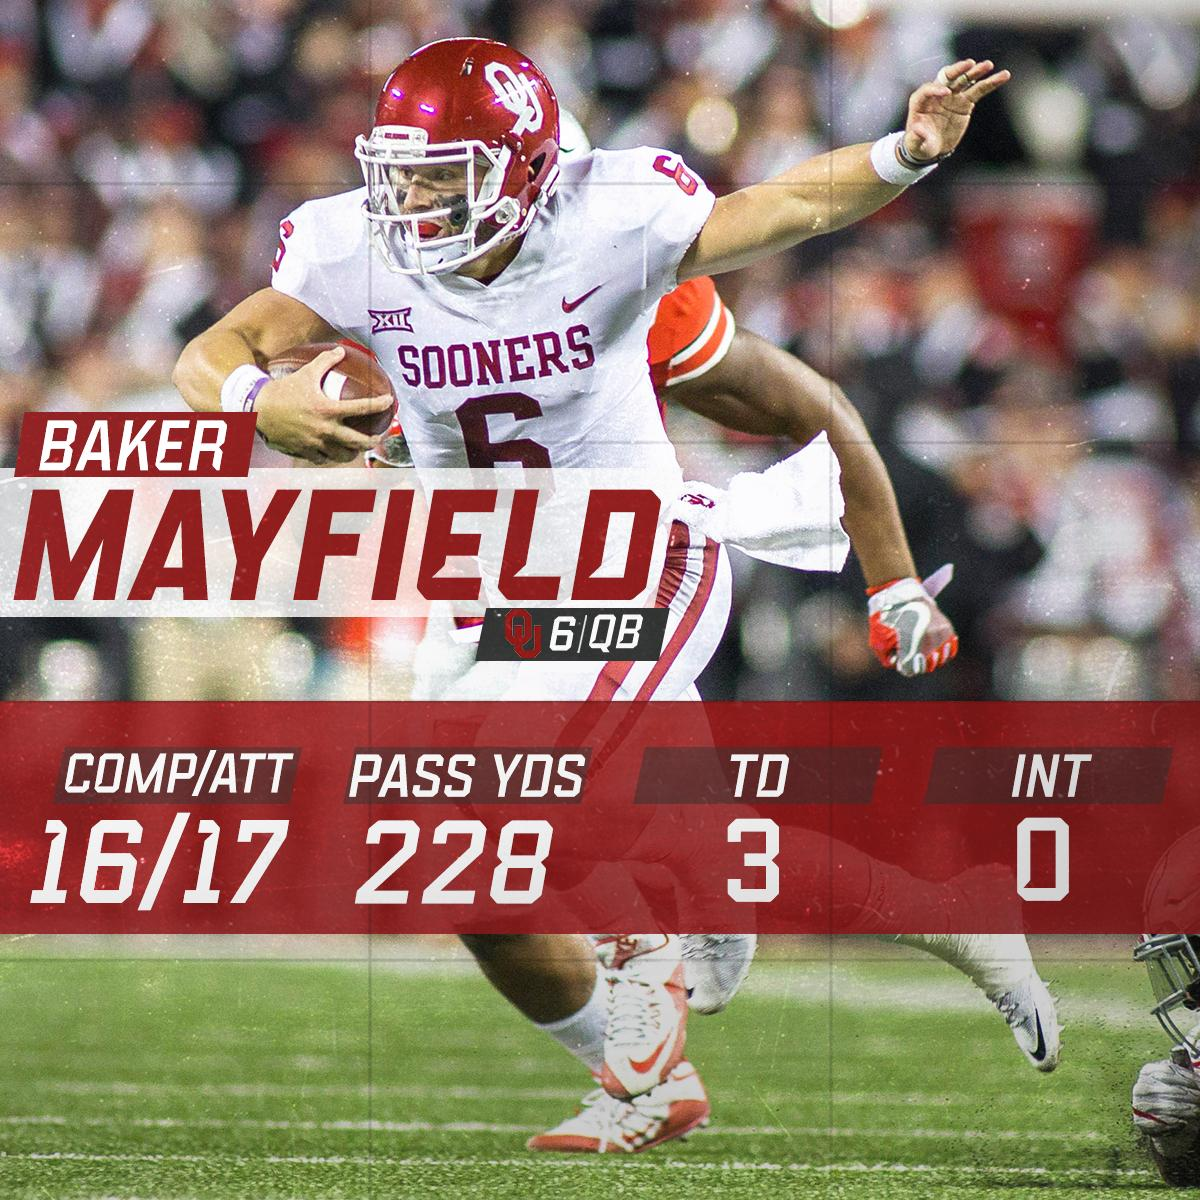 It was tied at halftime.  Then Baker Mayfield happened. https://t.co/KGAYe1jda7